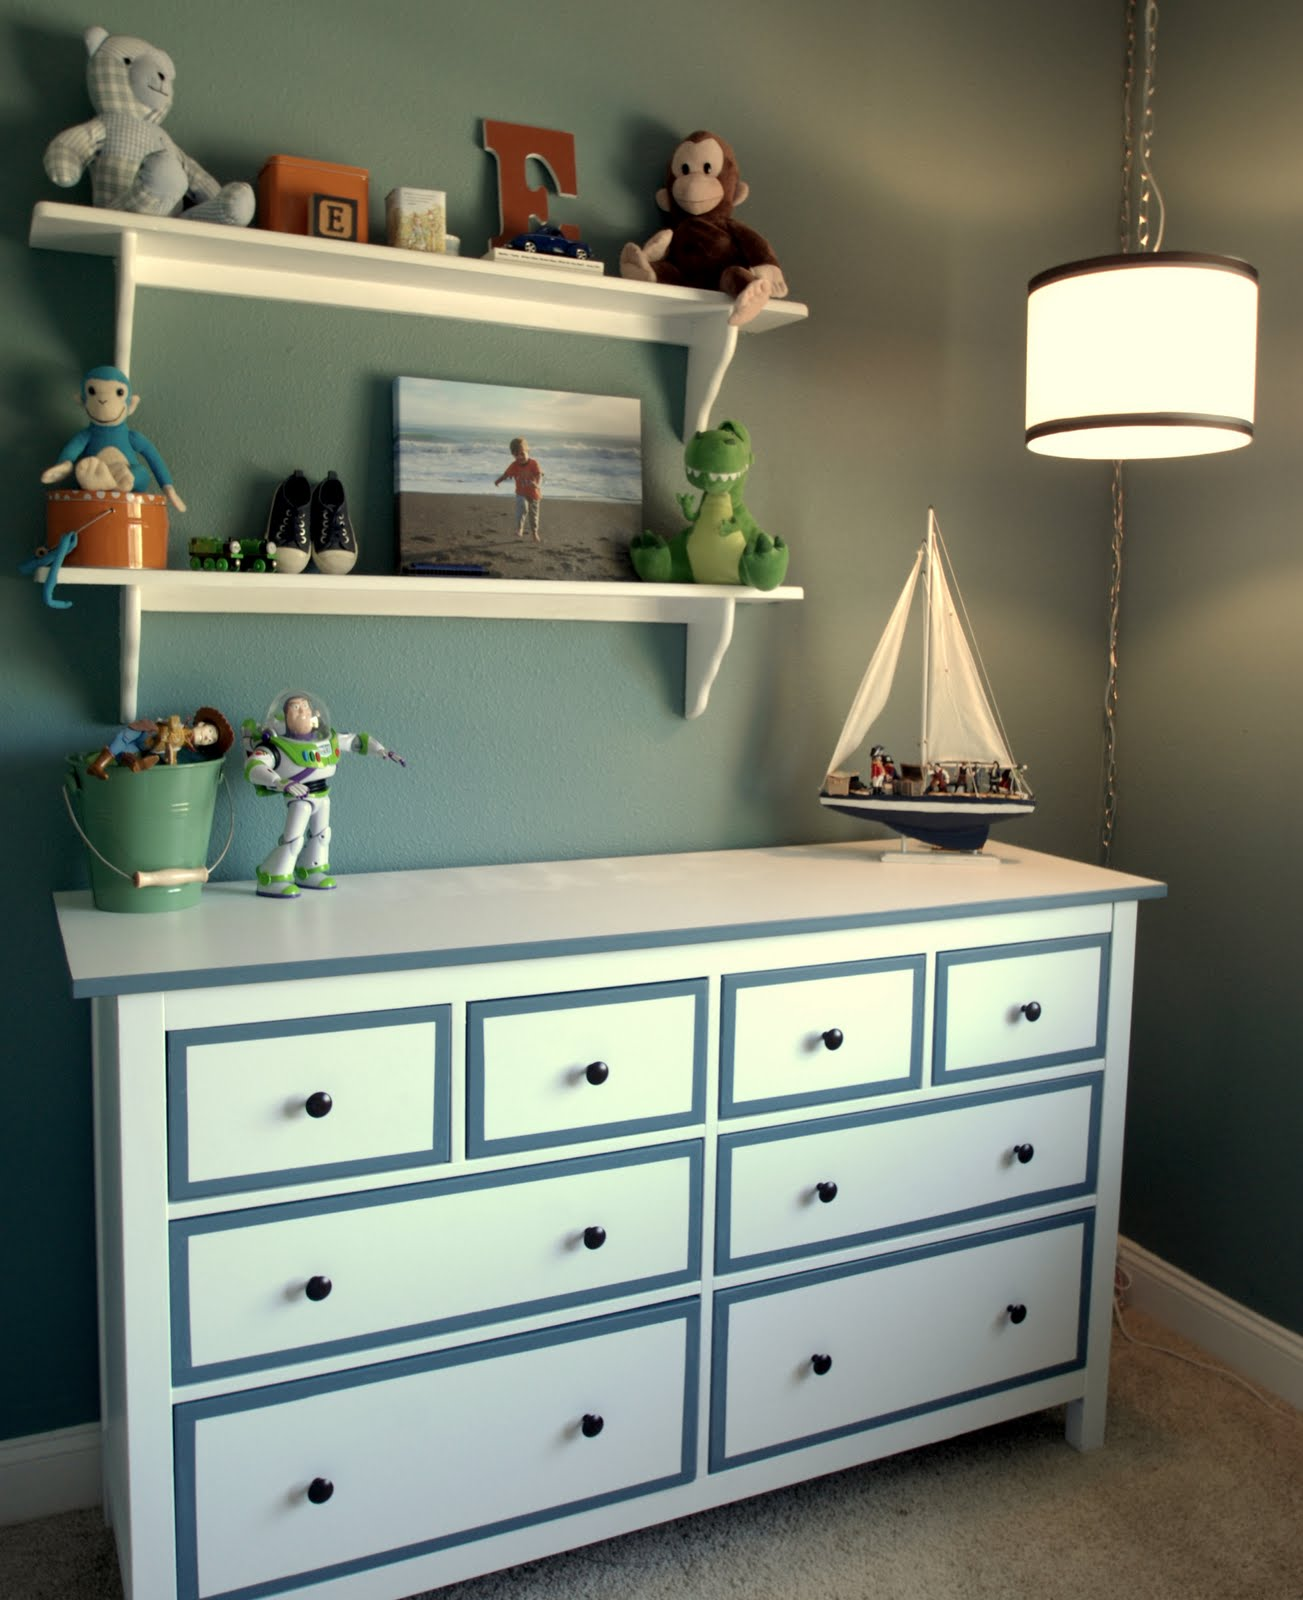 boys-room-dresser-from-side-773027